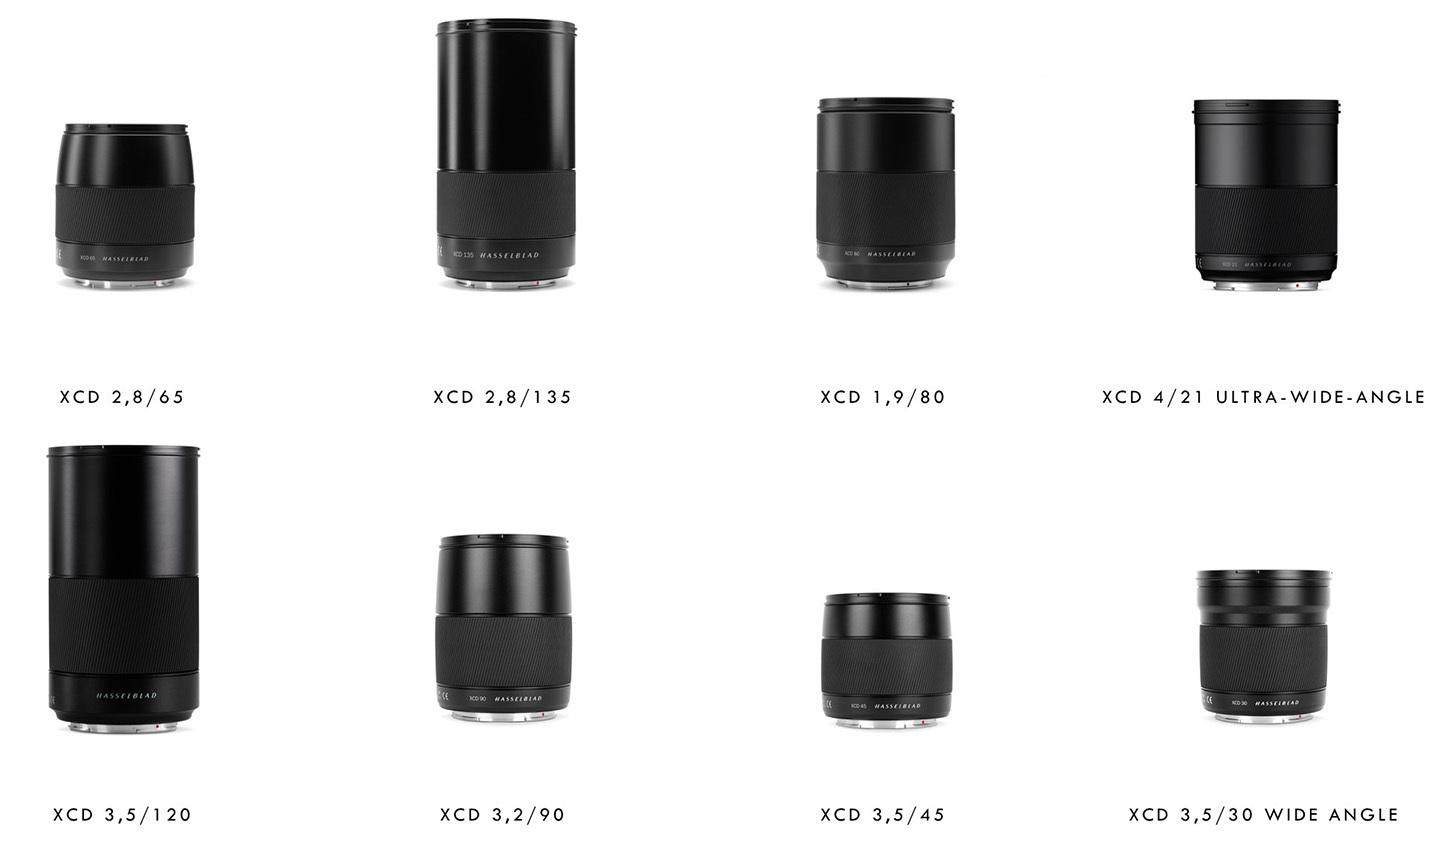 Hasselblad Intros XCD 1,9/80, XCD 2,8/65 and XCD 2,8/135